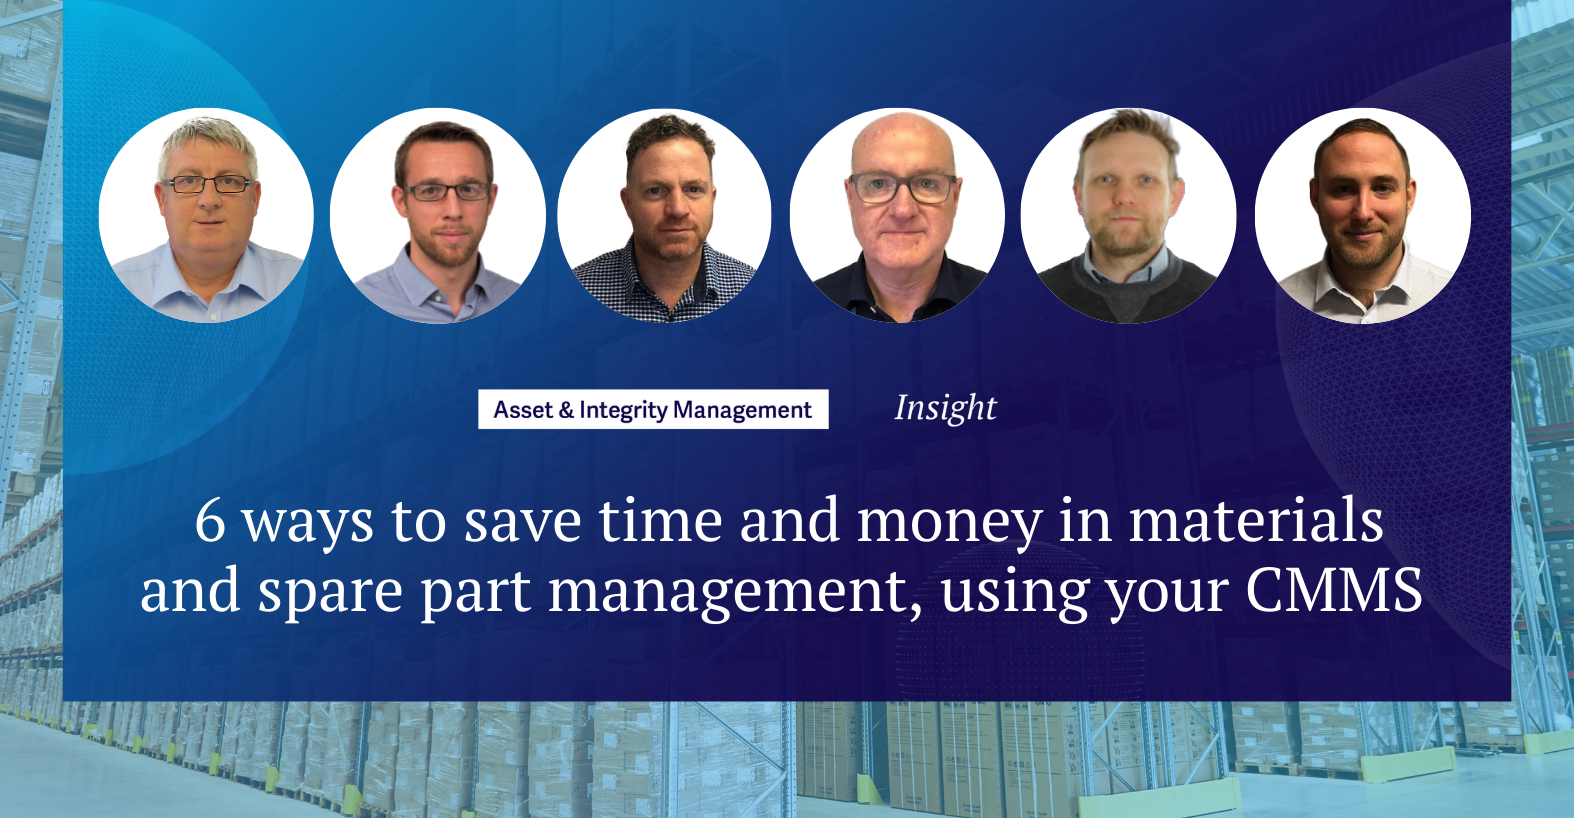 6 ways to save time and money in materials and spare part management, using your CMMS